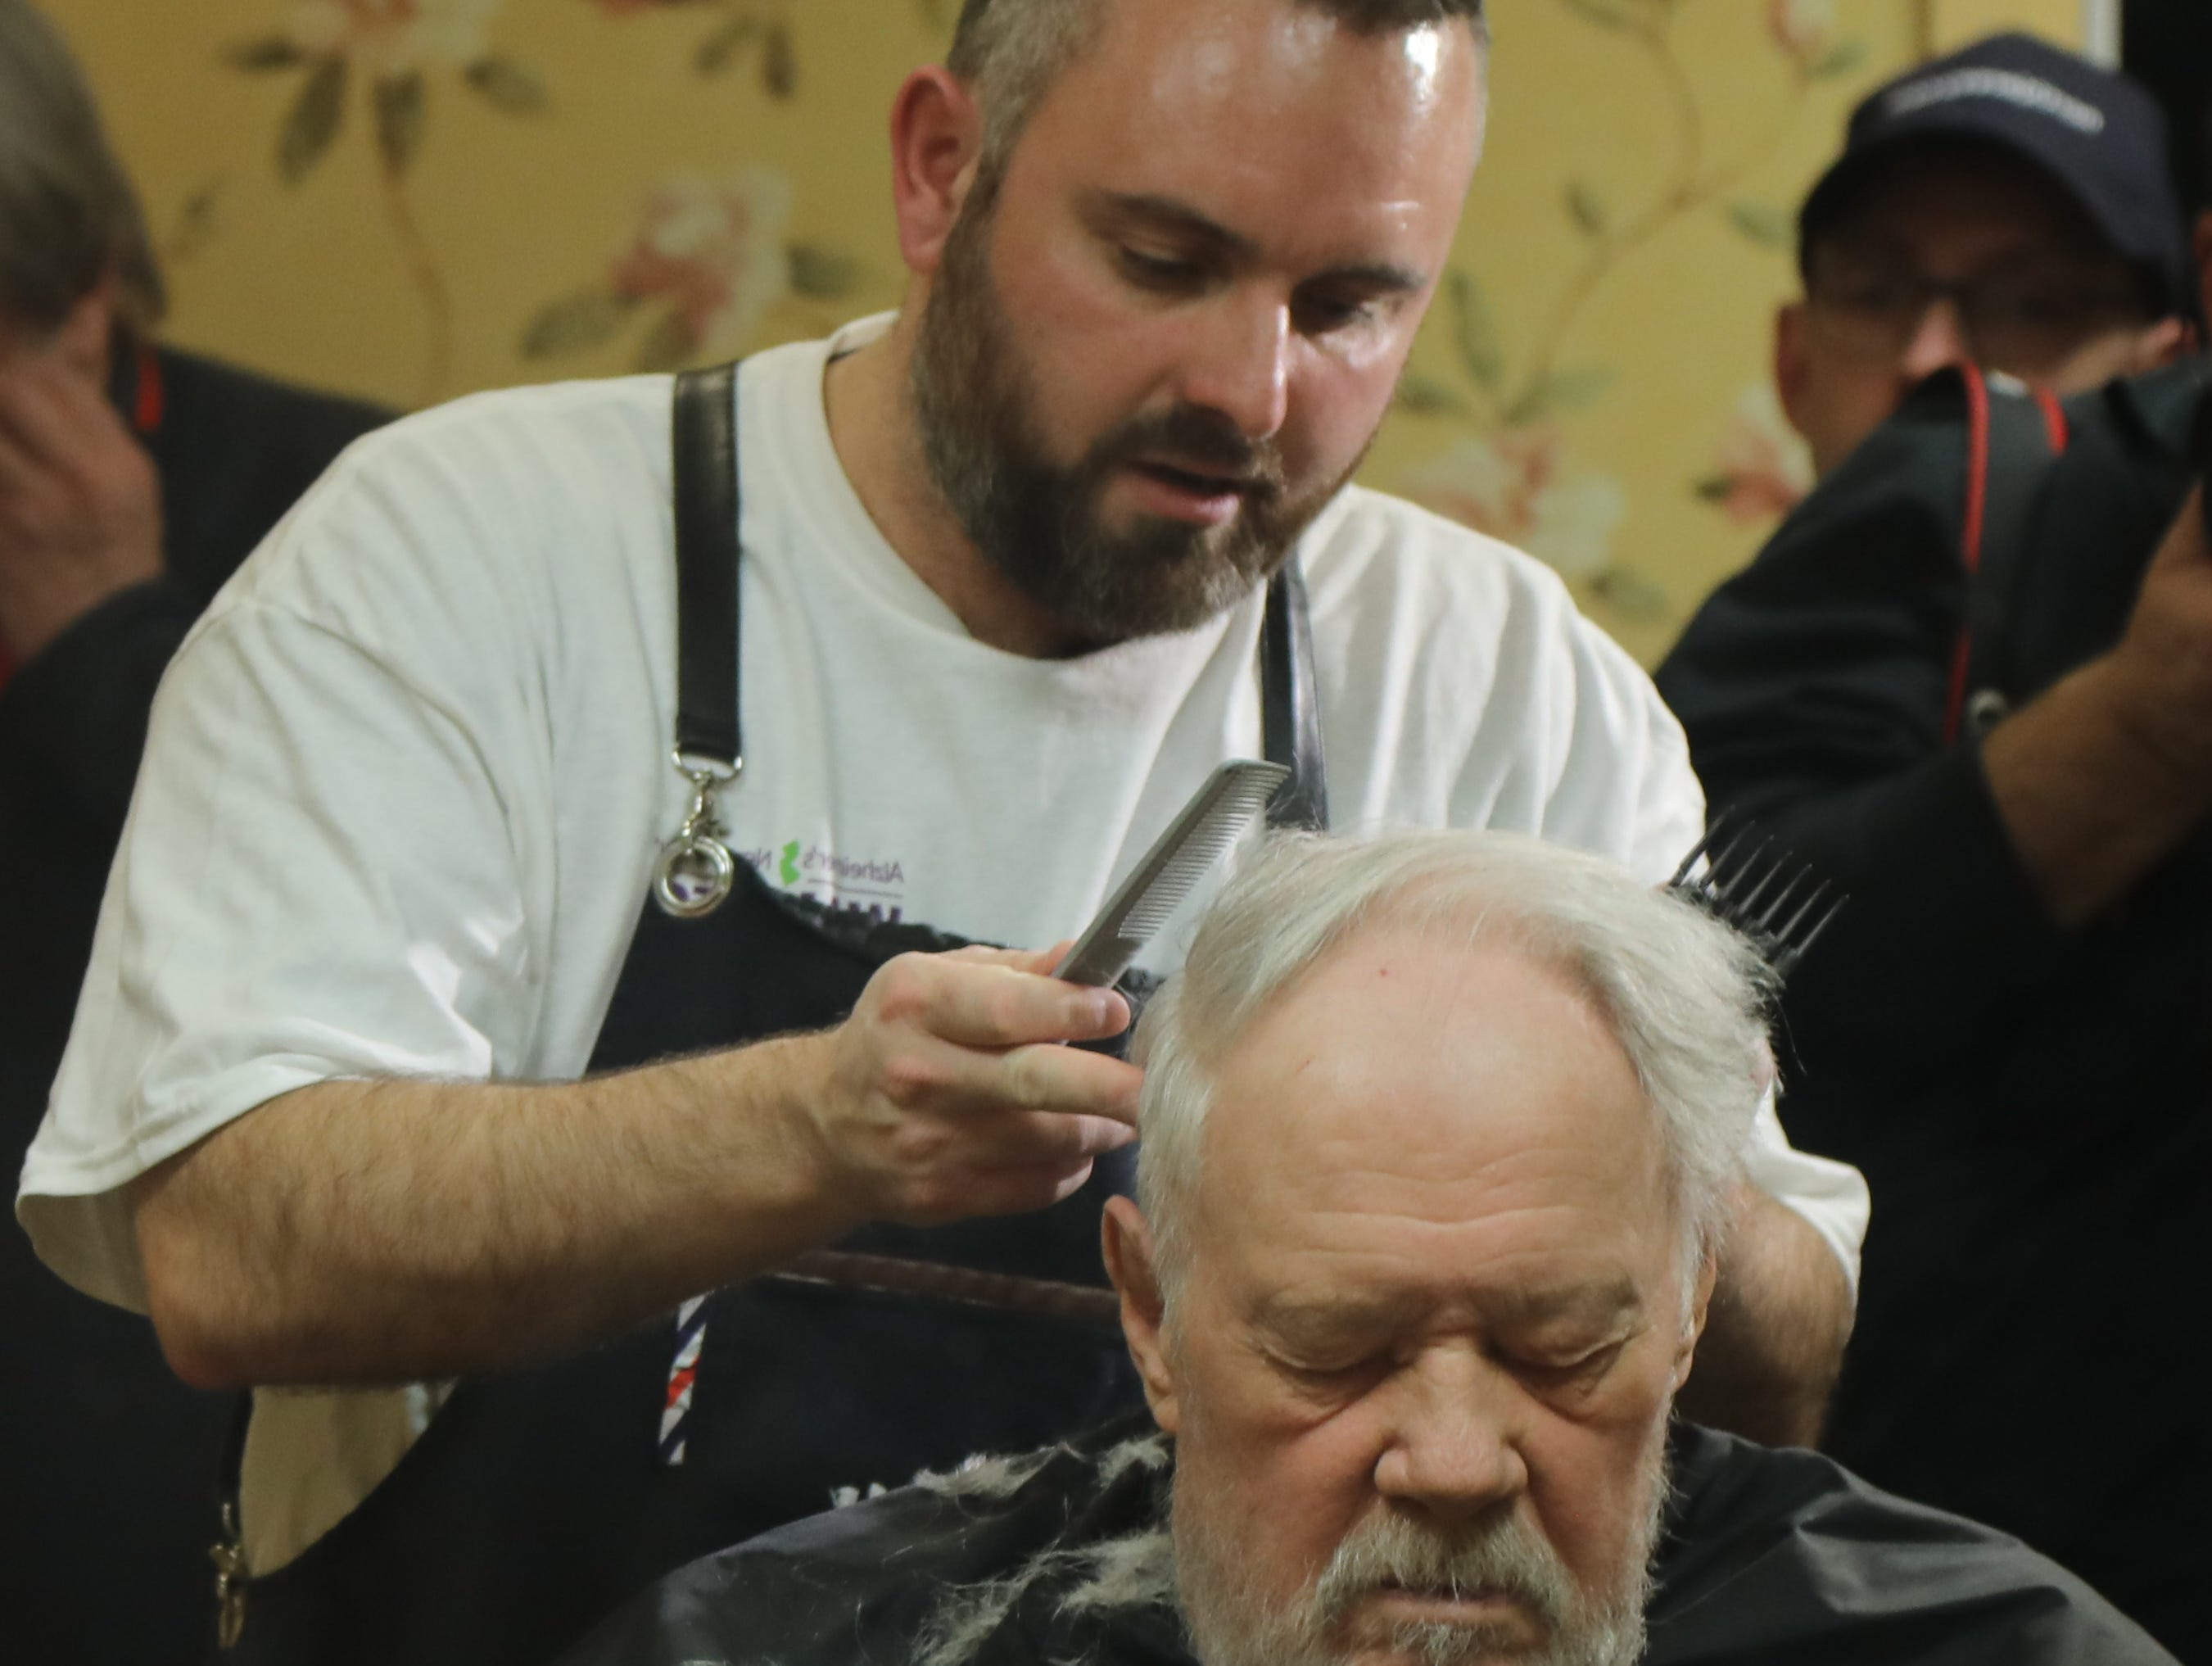 Lenny White, a barber from Northern Ireland, gives a complimentary haircut to Howard Smith 86.  Smith is a resident of The Chelsea of Montville, an assisted living facility in Montville Twp., NJ on January 3, 2019.